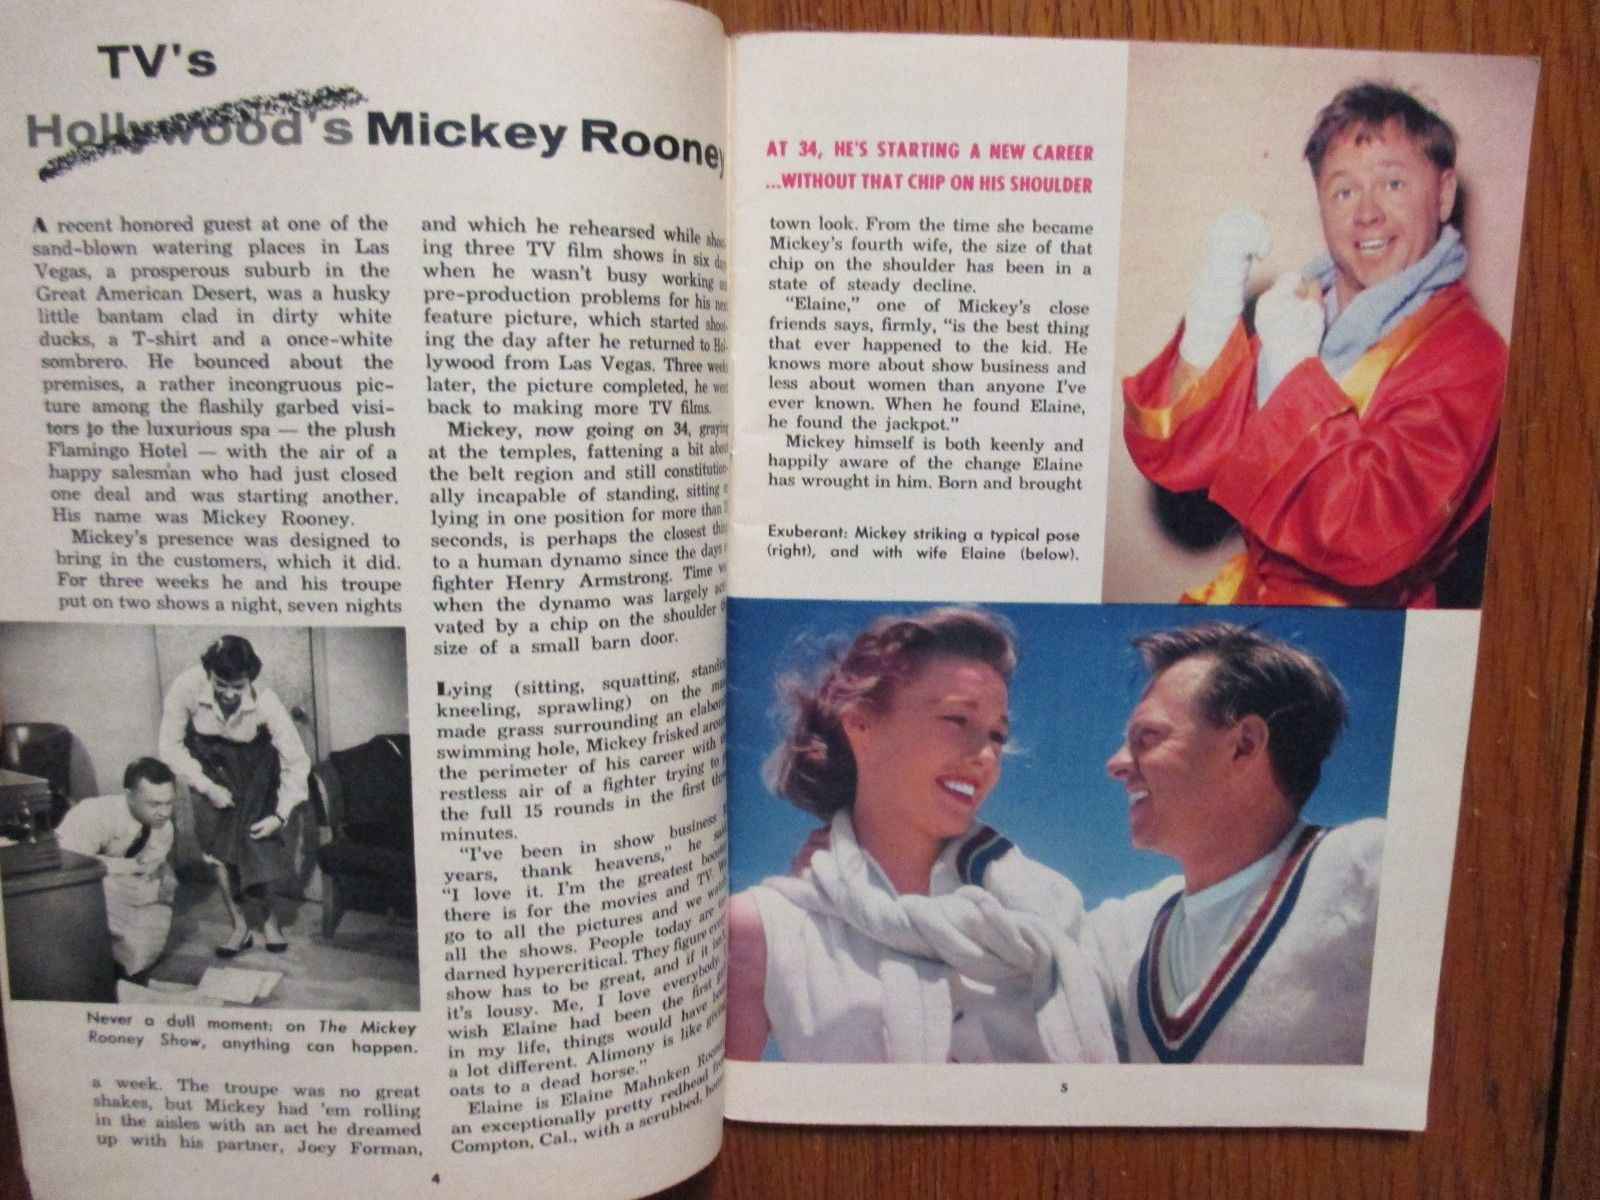 1954_ILLINOIS_TV_GUIDE_DOROTHY_ABBOTT_MICKEY_ROONEY_BETTY_ANN_GROVE_MERV_GRIFFIN